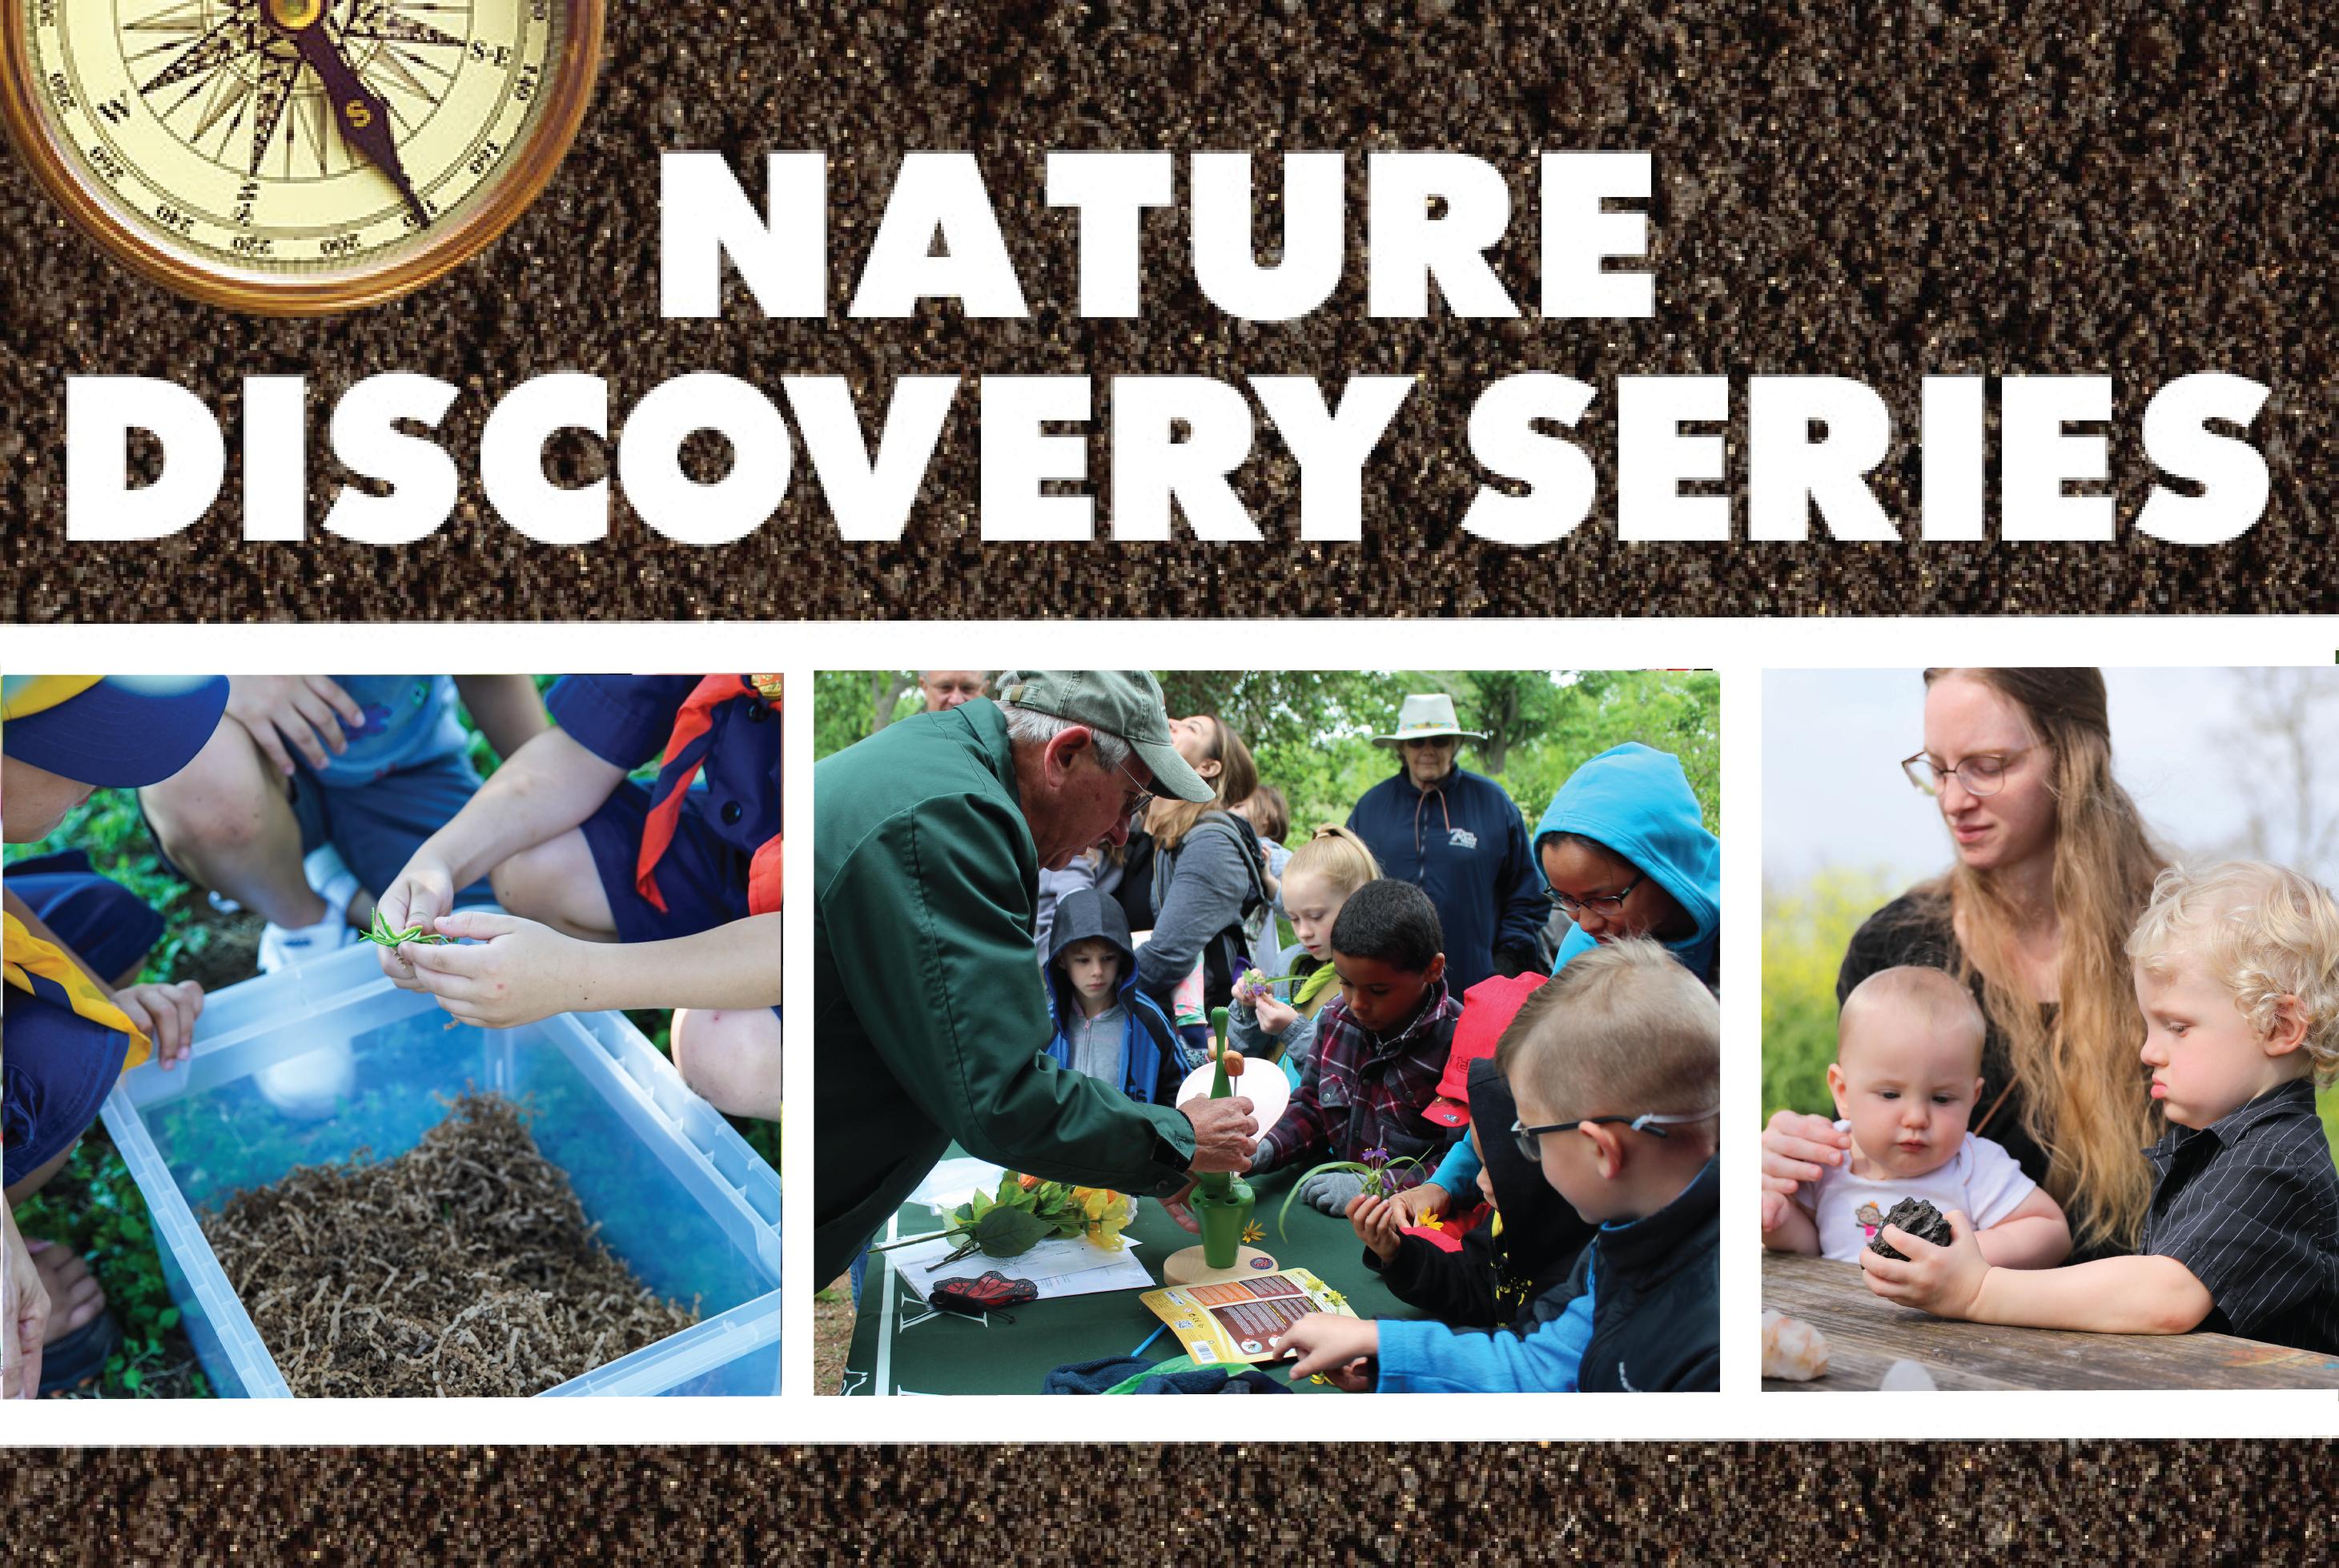 Nature Discovery Series Flyer 2021 -02